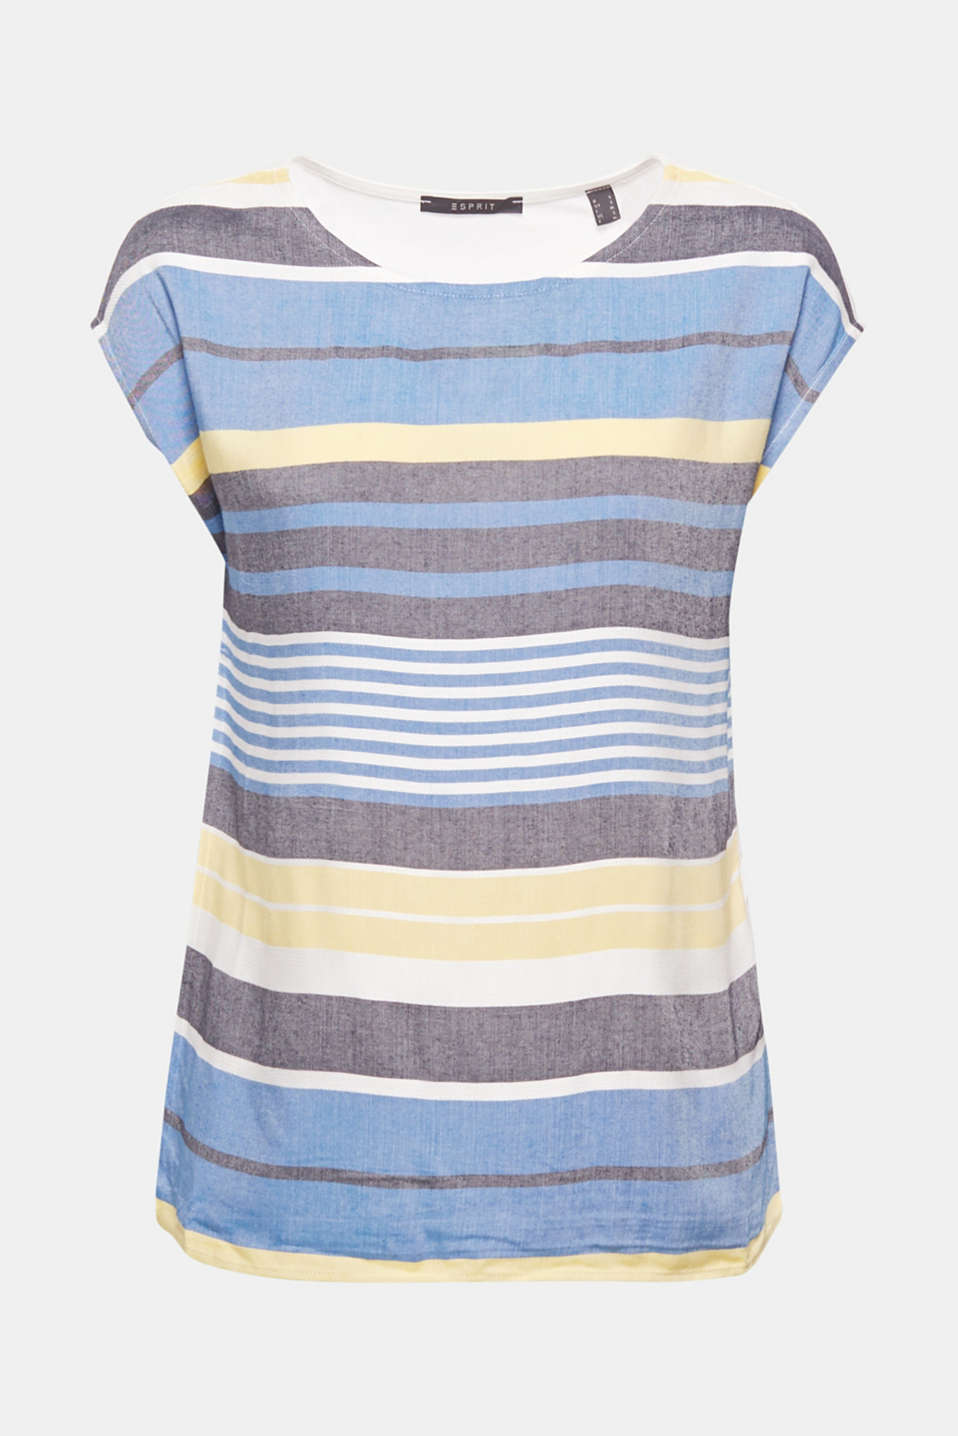 This casual blouse top with trendy colour block stripes comes with a woven front section and a soft jersey back for a high level of comfort!